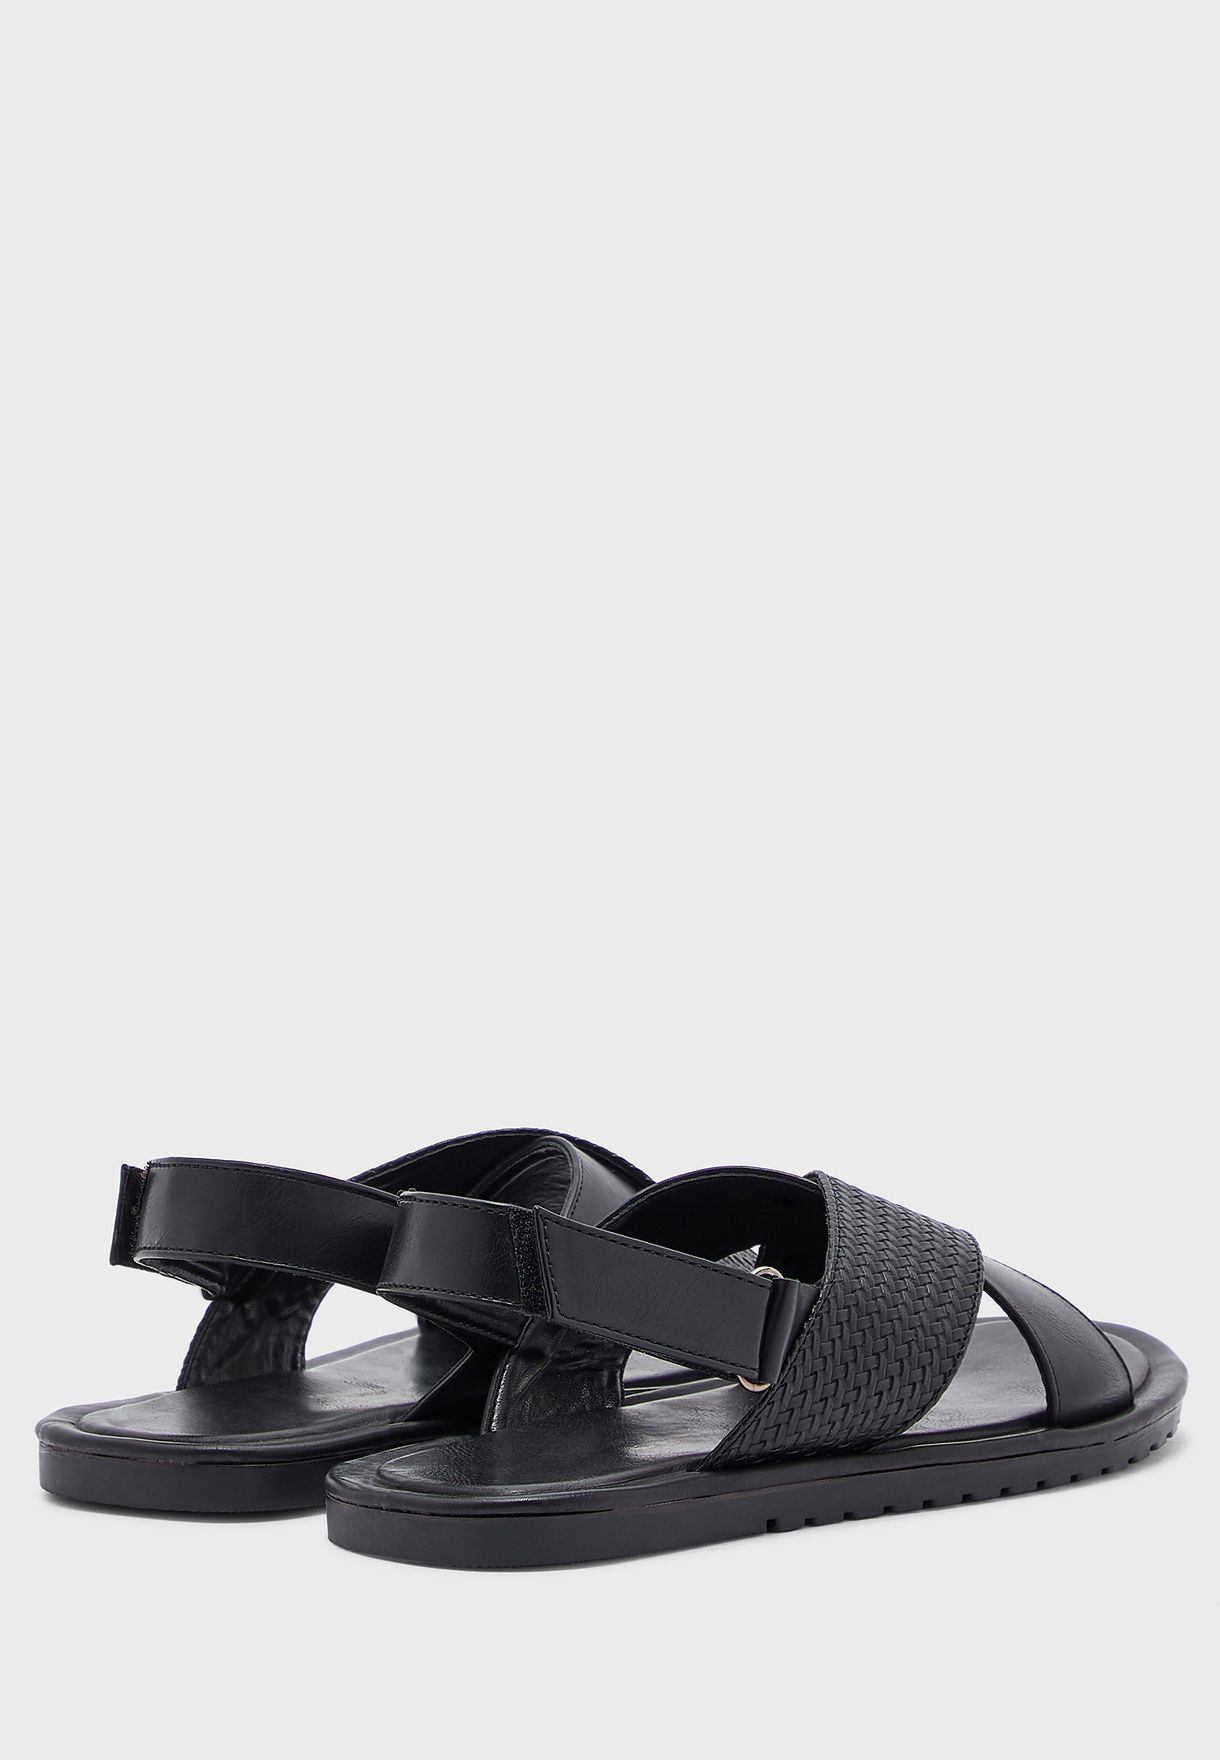 Mens Cross Strap Sandals